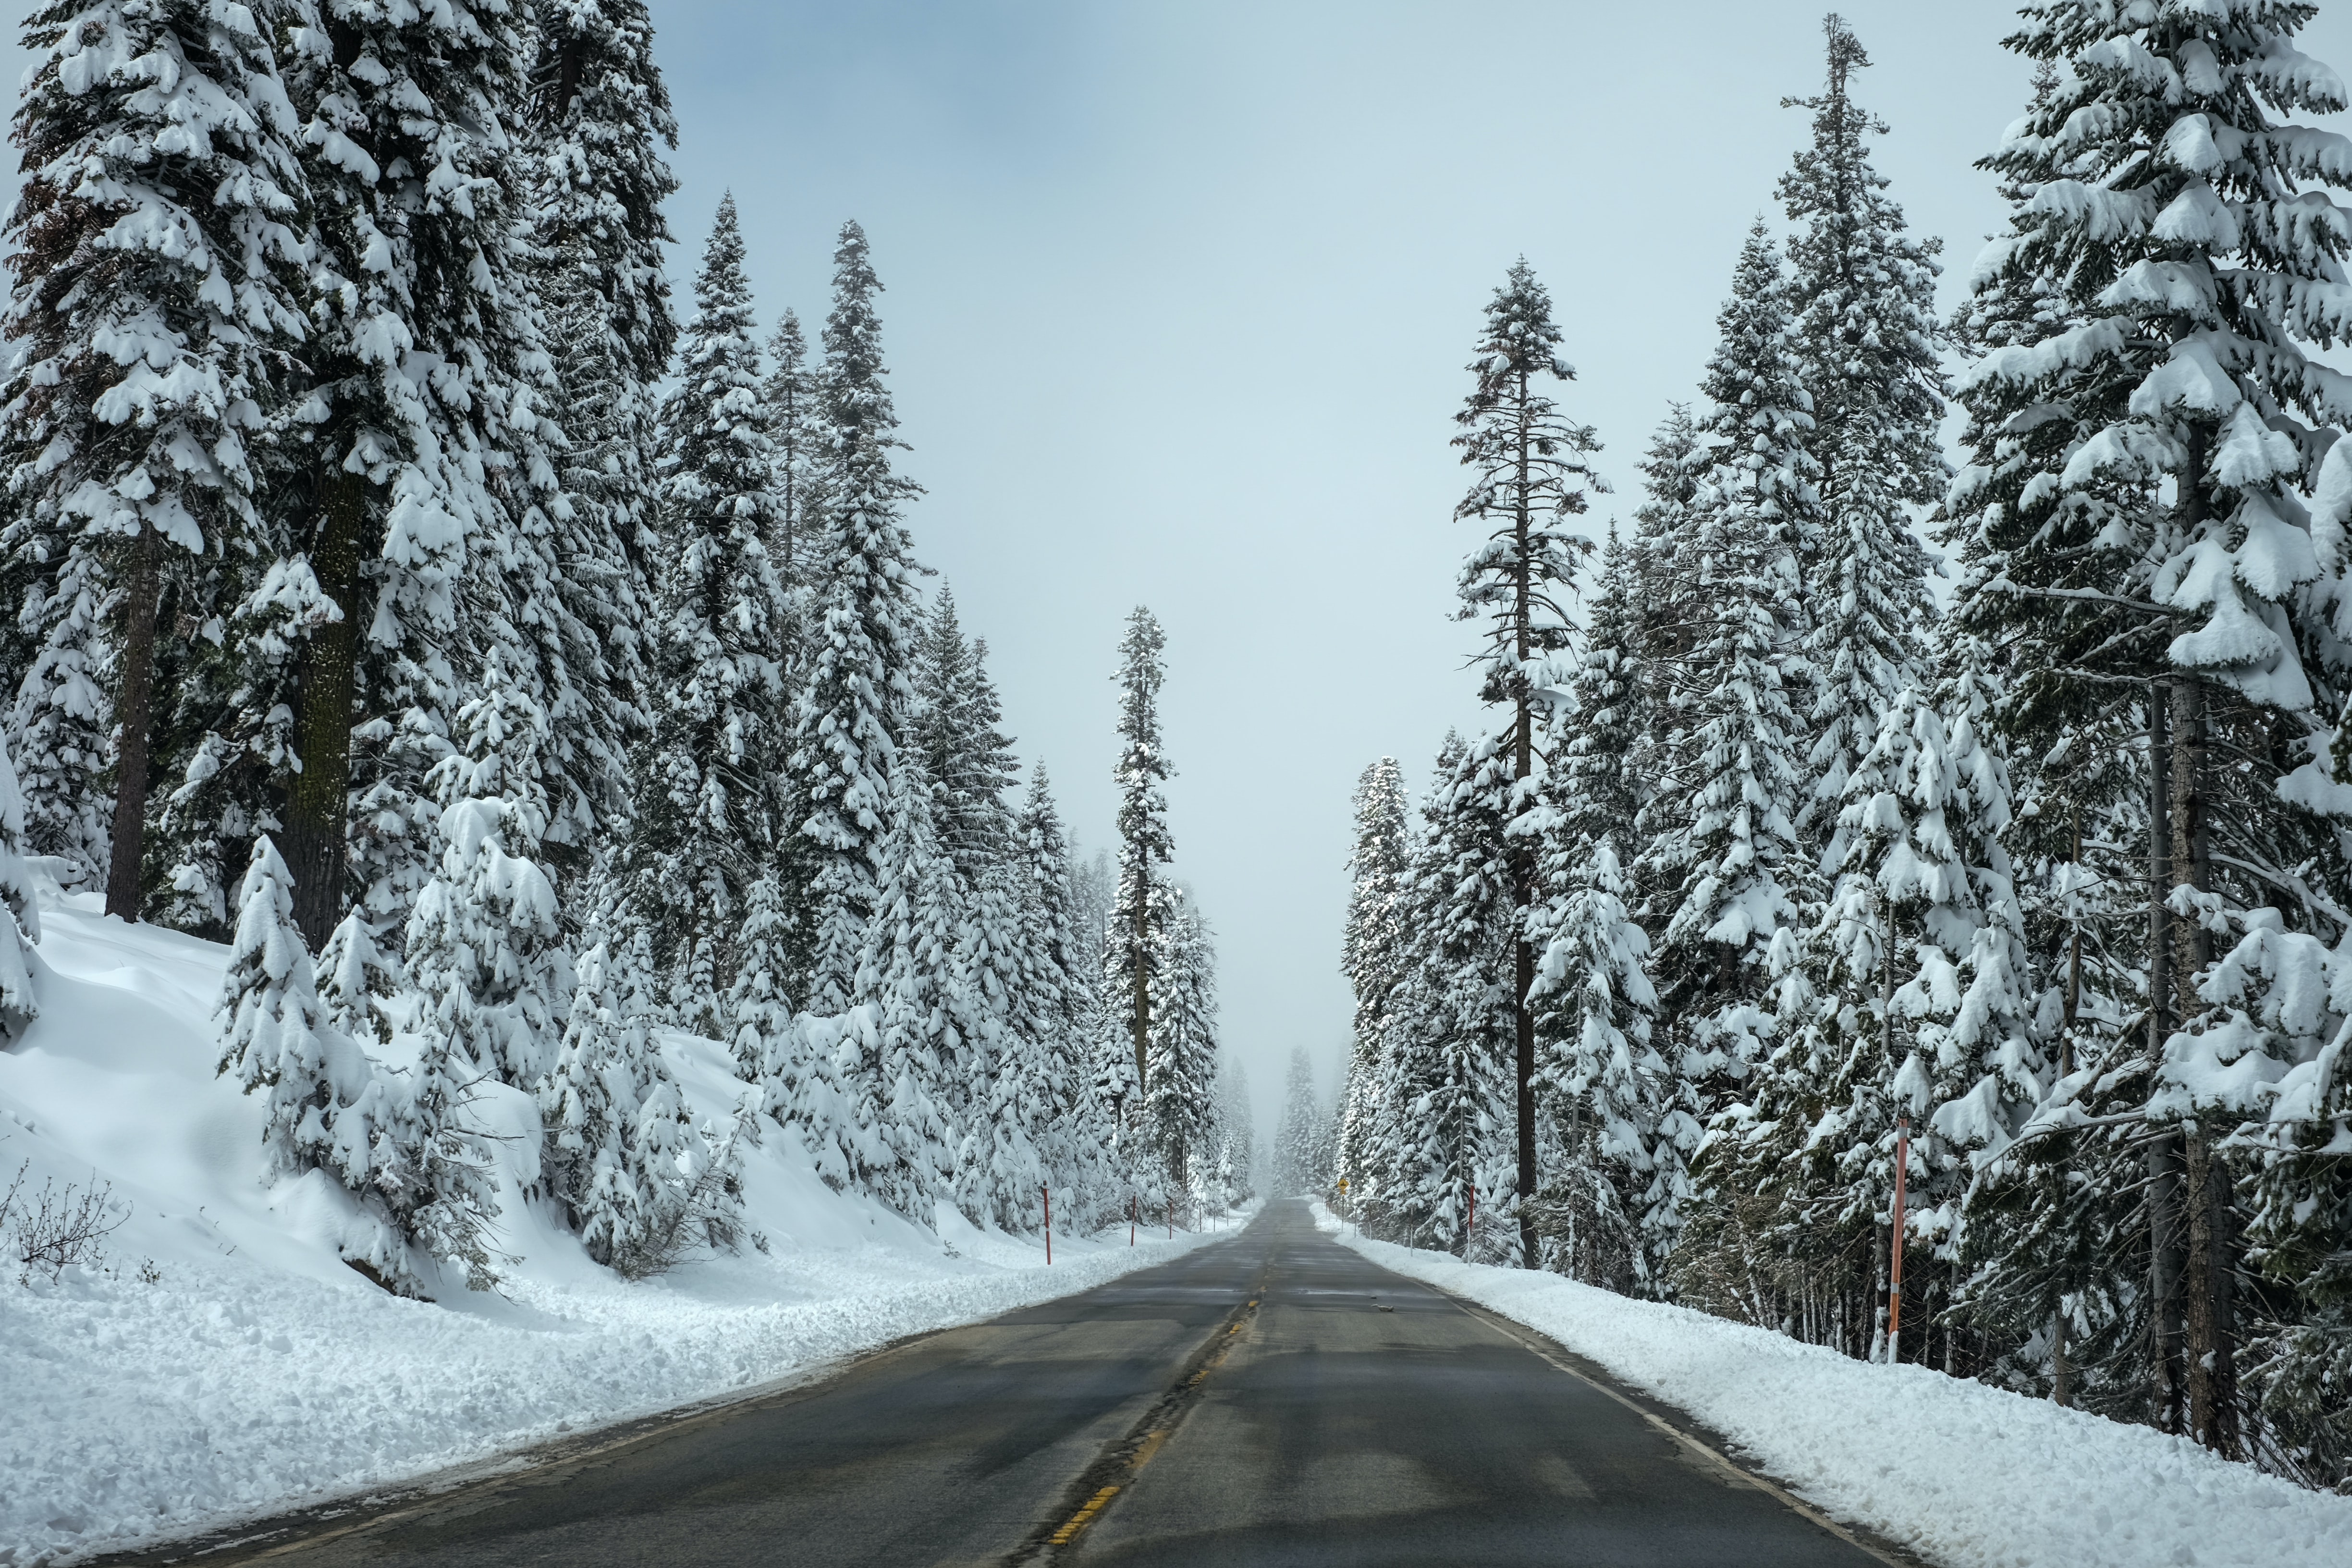 An empty asphalt road lined with snow-topped conifers